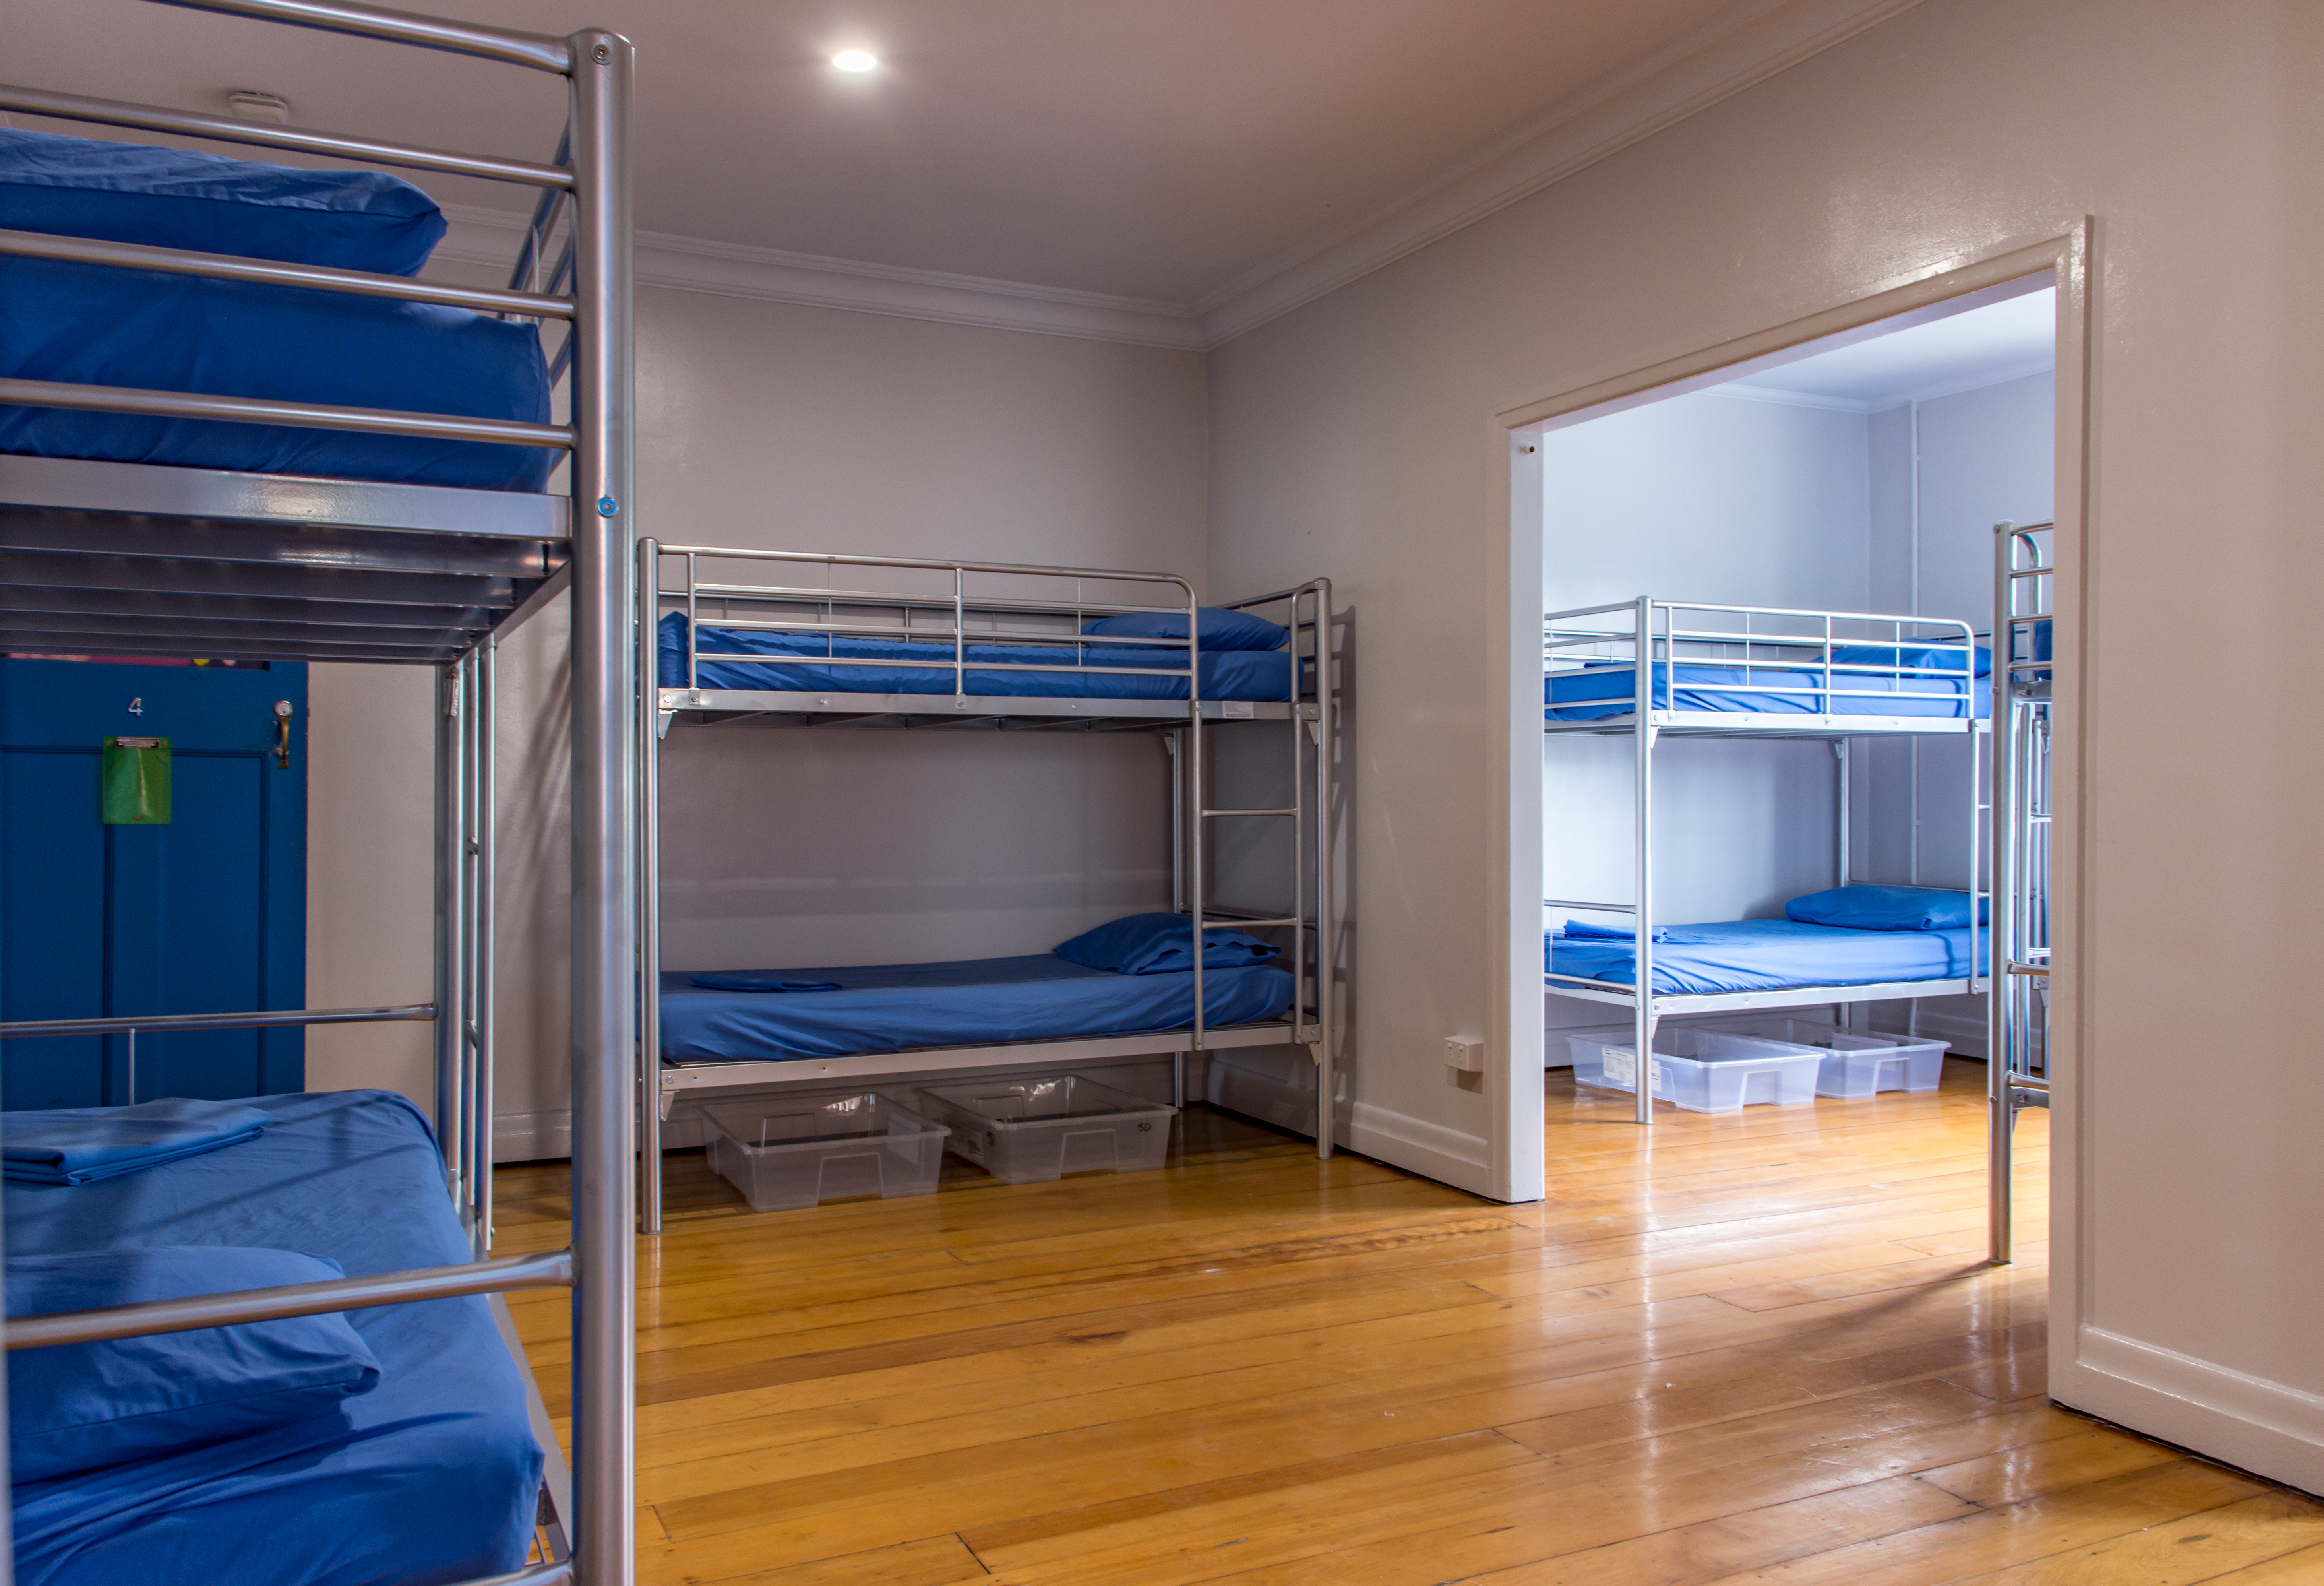 10 8 7 and 6 share bed mixed dorm room with bunk beds. Nightly from $17 per night (based on weekly rate) & 10 8 7 and 6 bed dorm with bunk beds | Joe\u0027s Place Backpackers